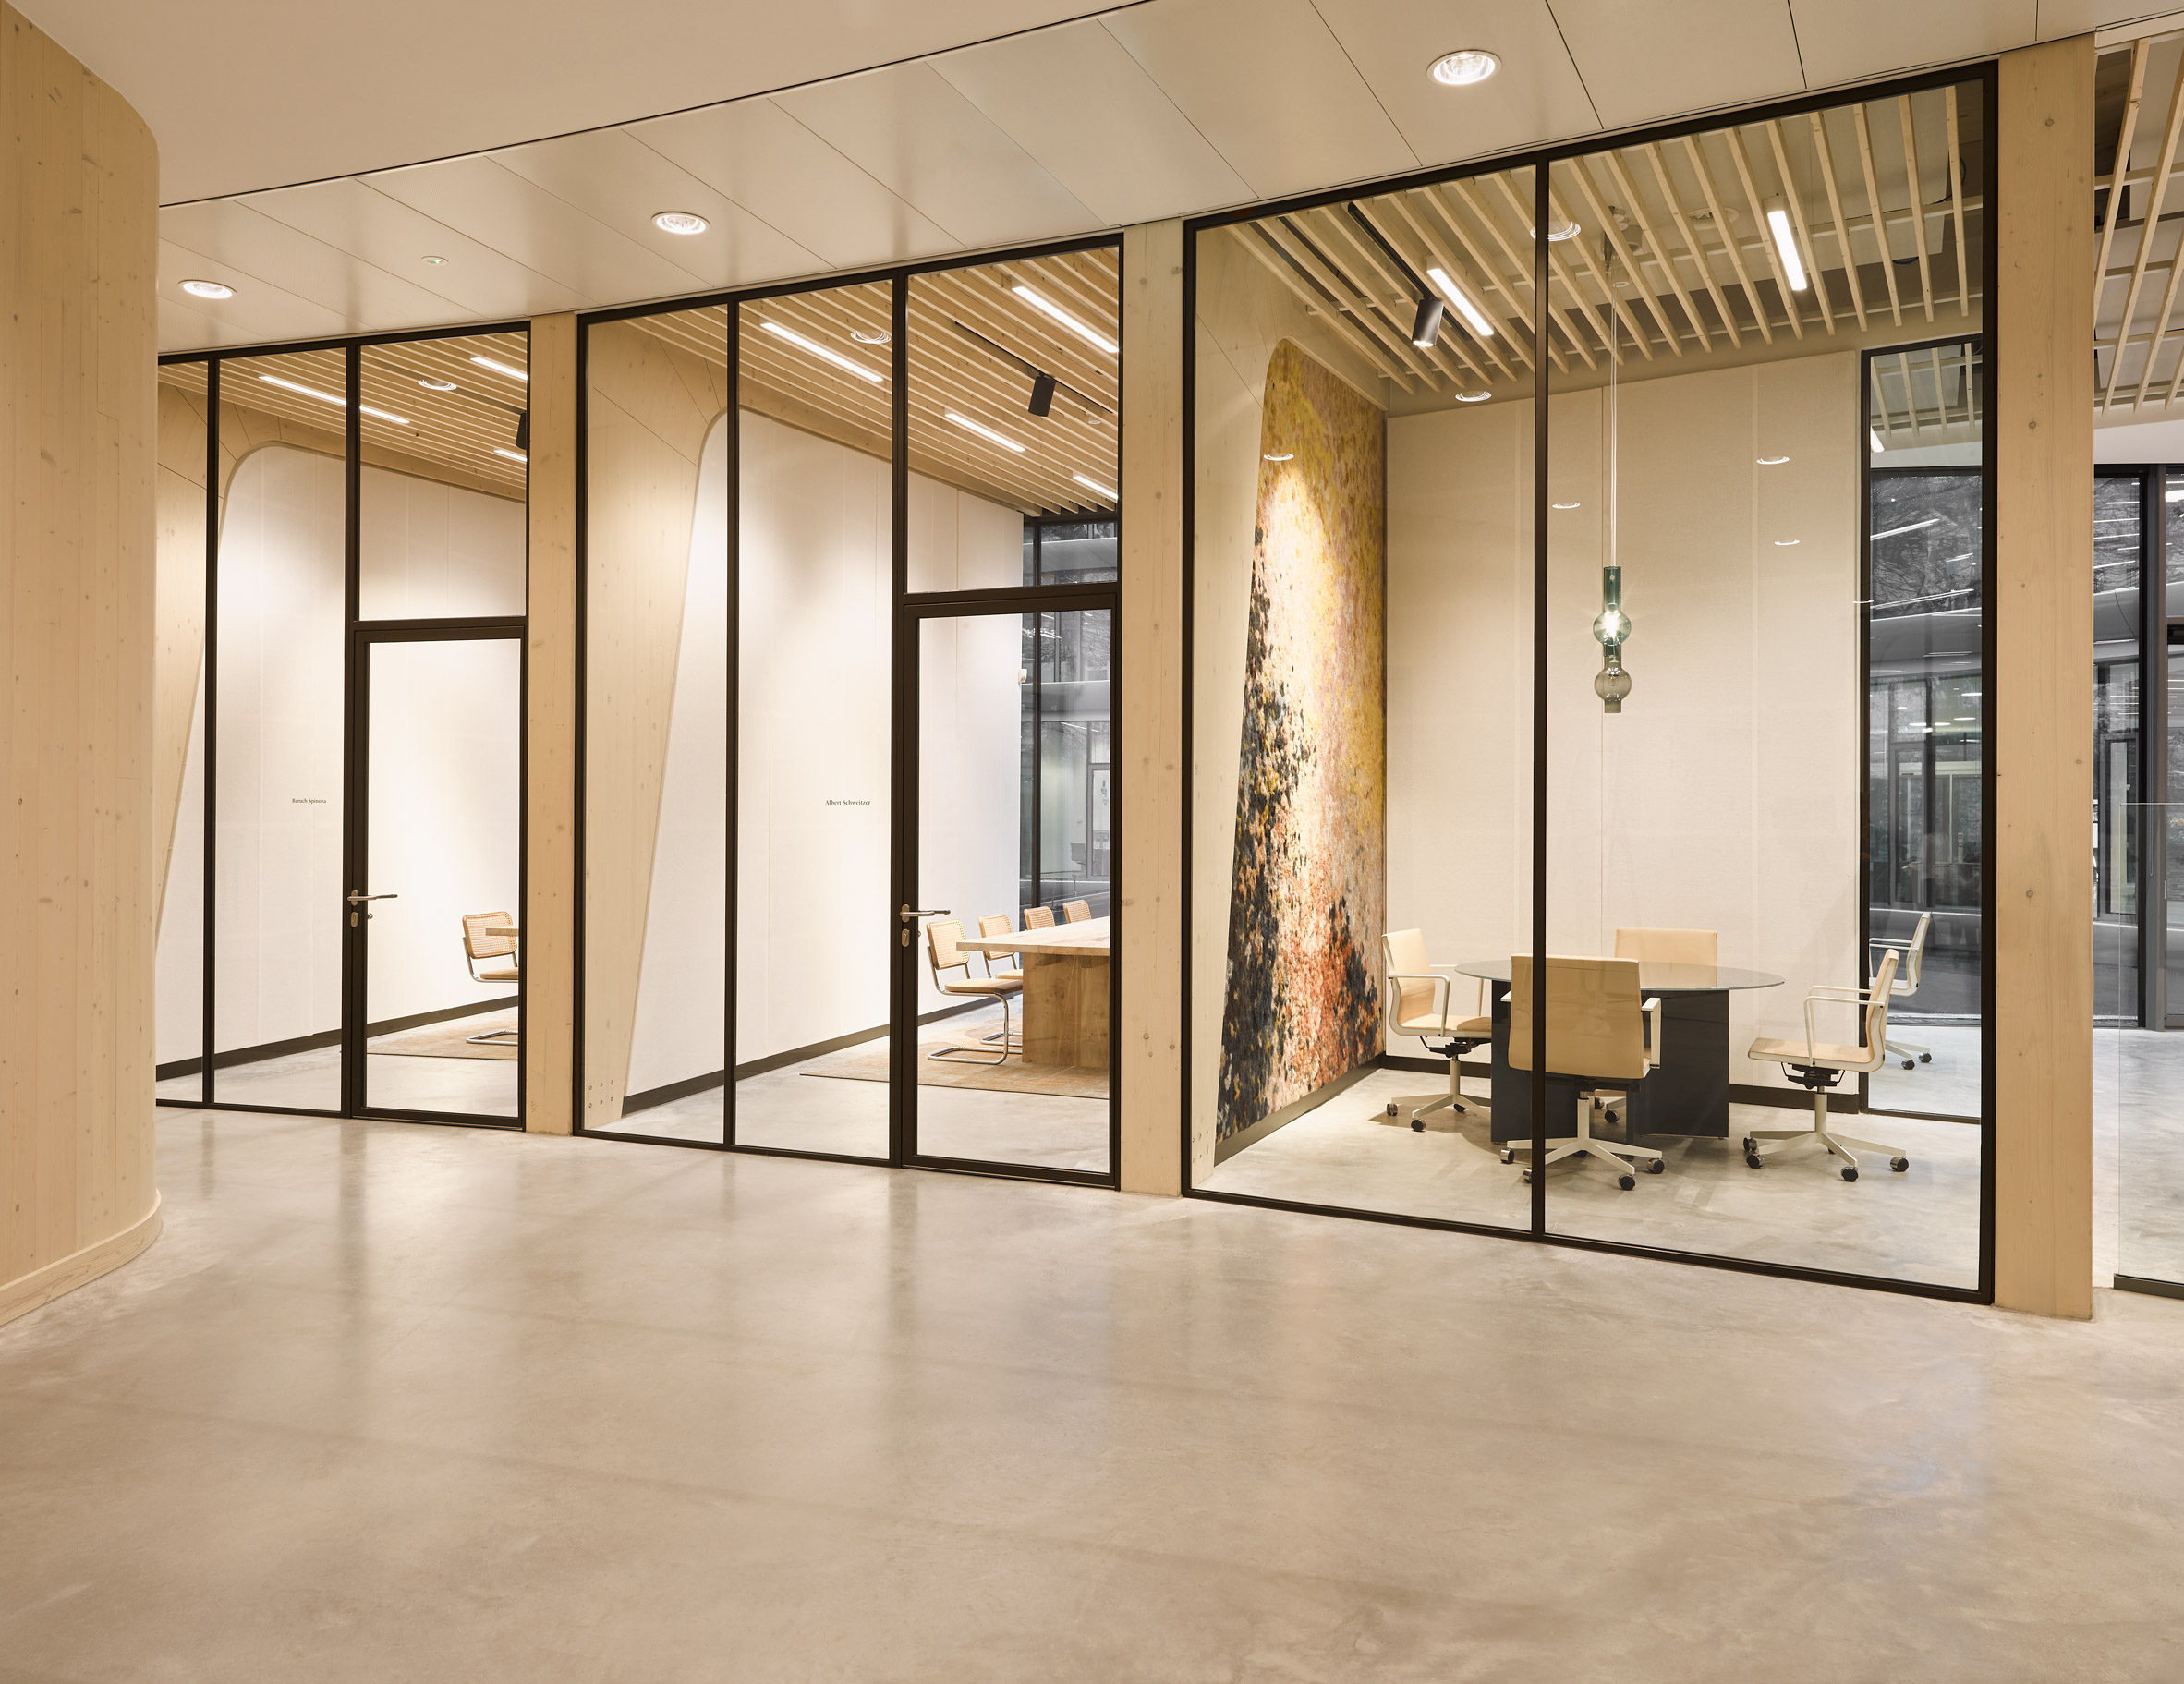 Glass-walled meeting rooms